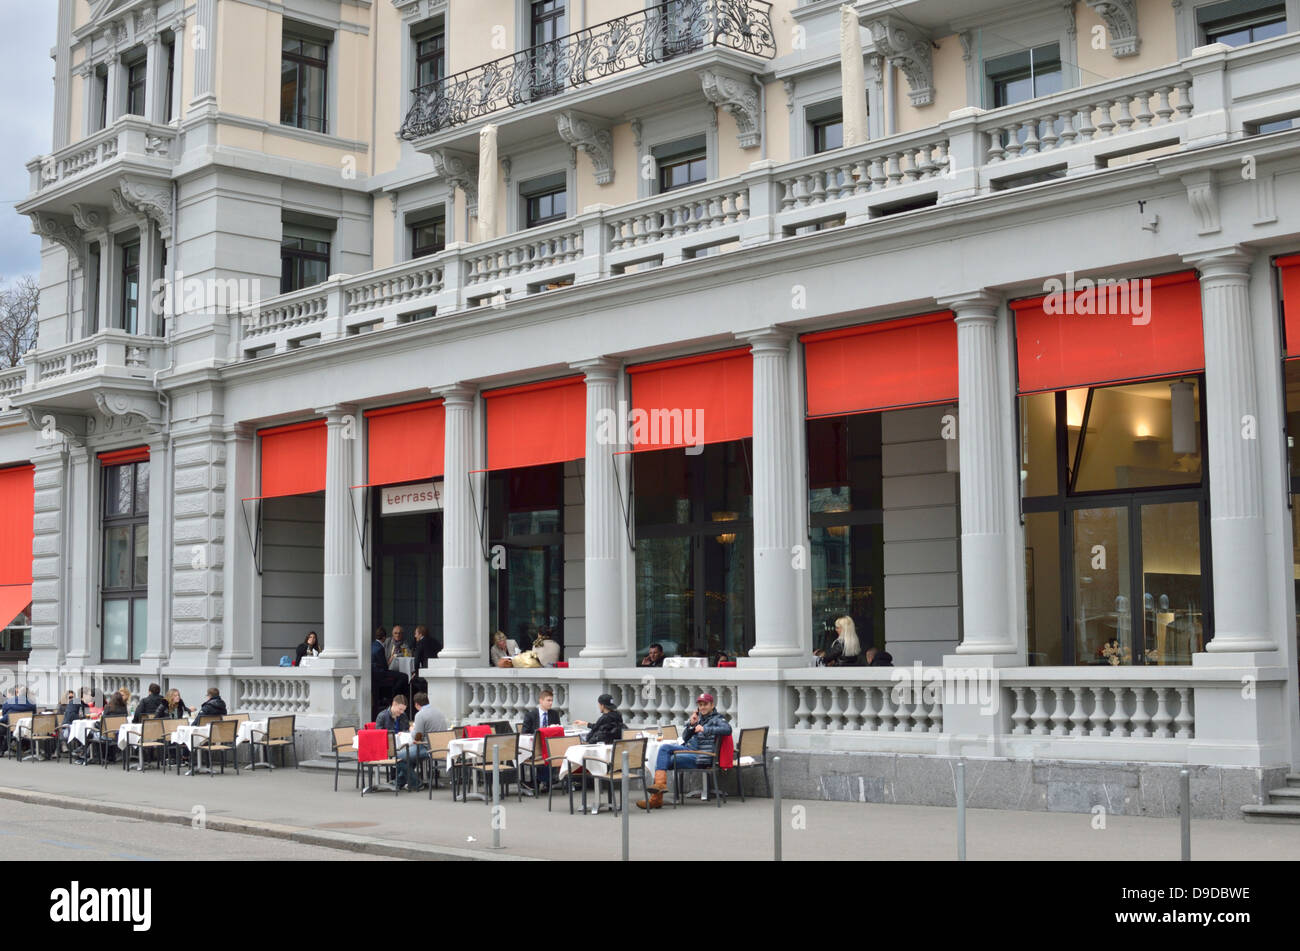 bar restaurant terrasse limmatquai zurich switzerland stockfoto lizenzfreies bild 57457722. Black Bedroom Furniture Sets. Home Design Ideas